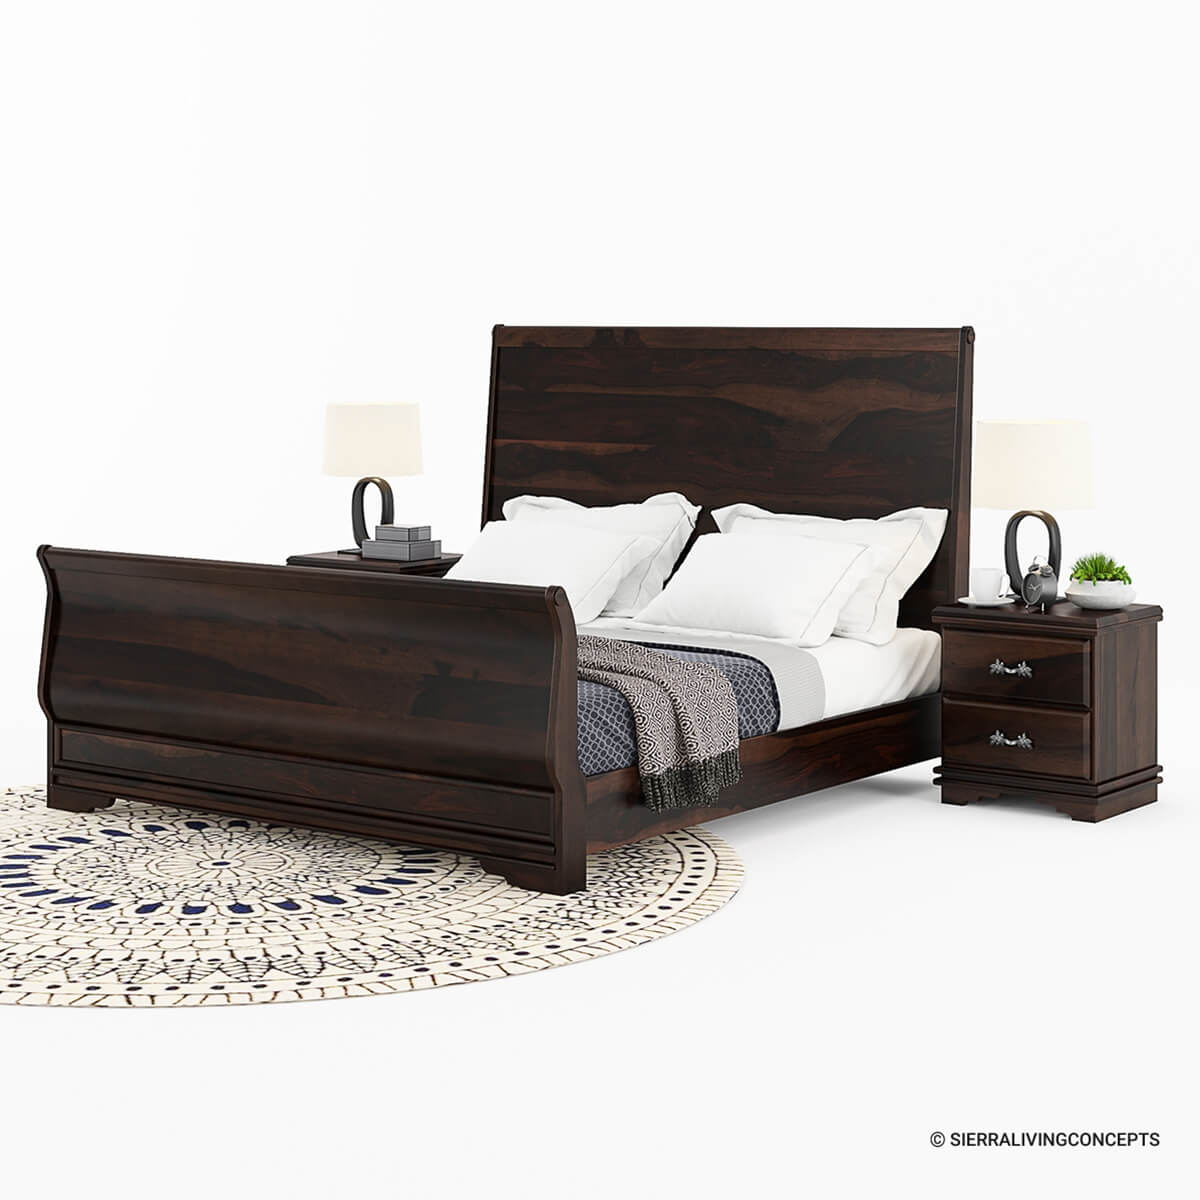 Sleigh back solid wood platform bed frame Wood platform bed